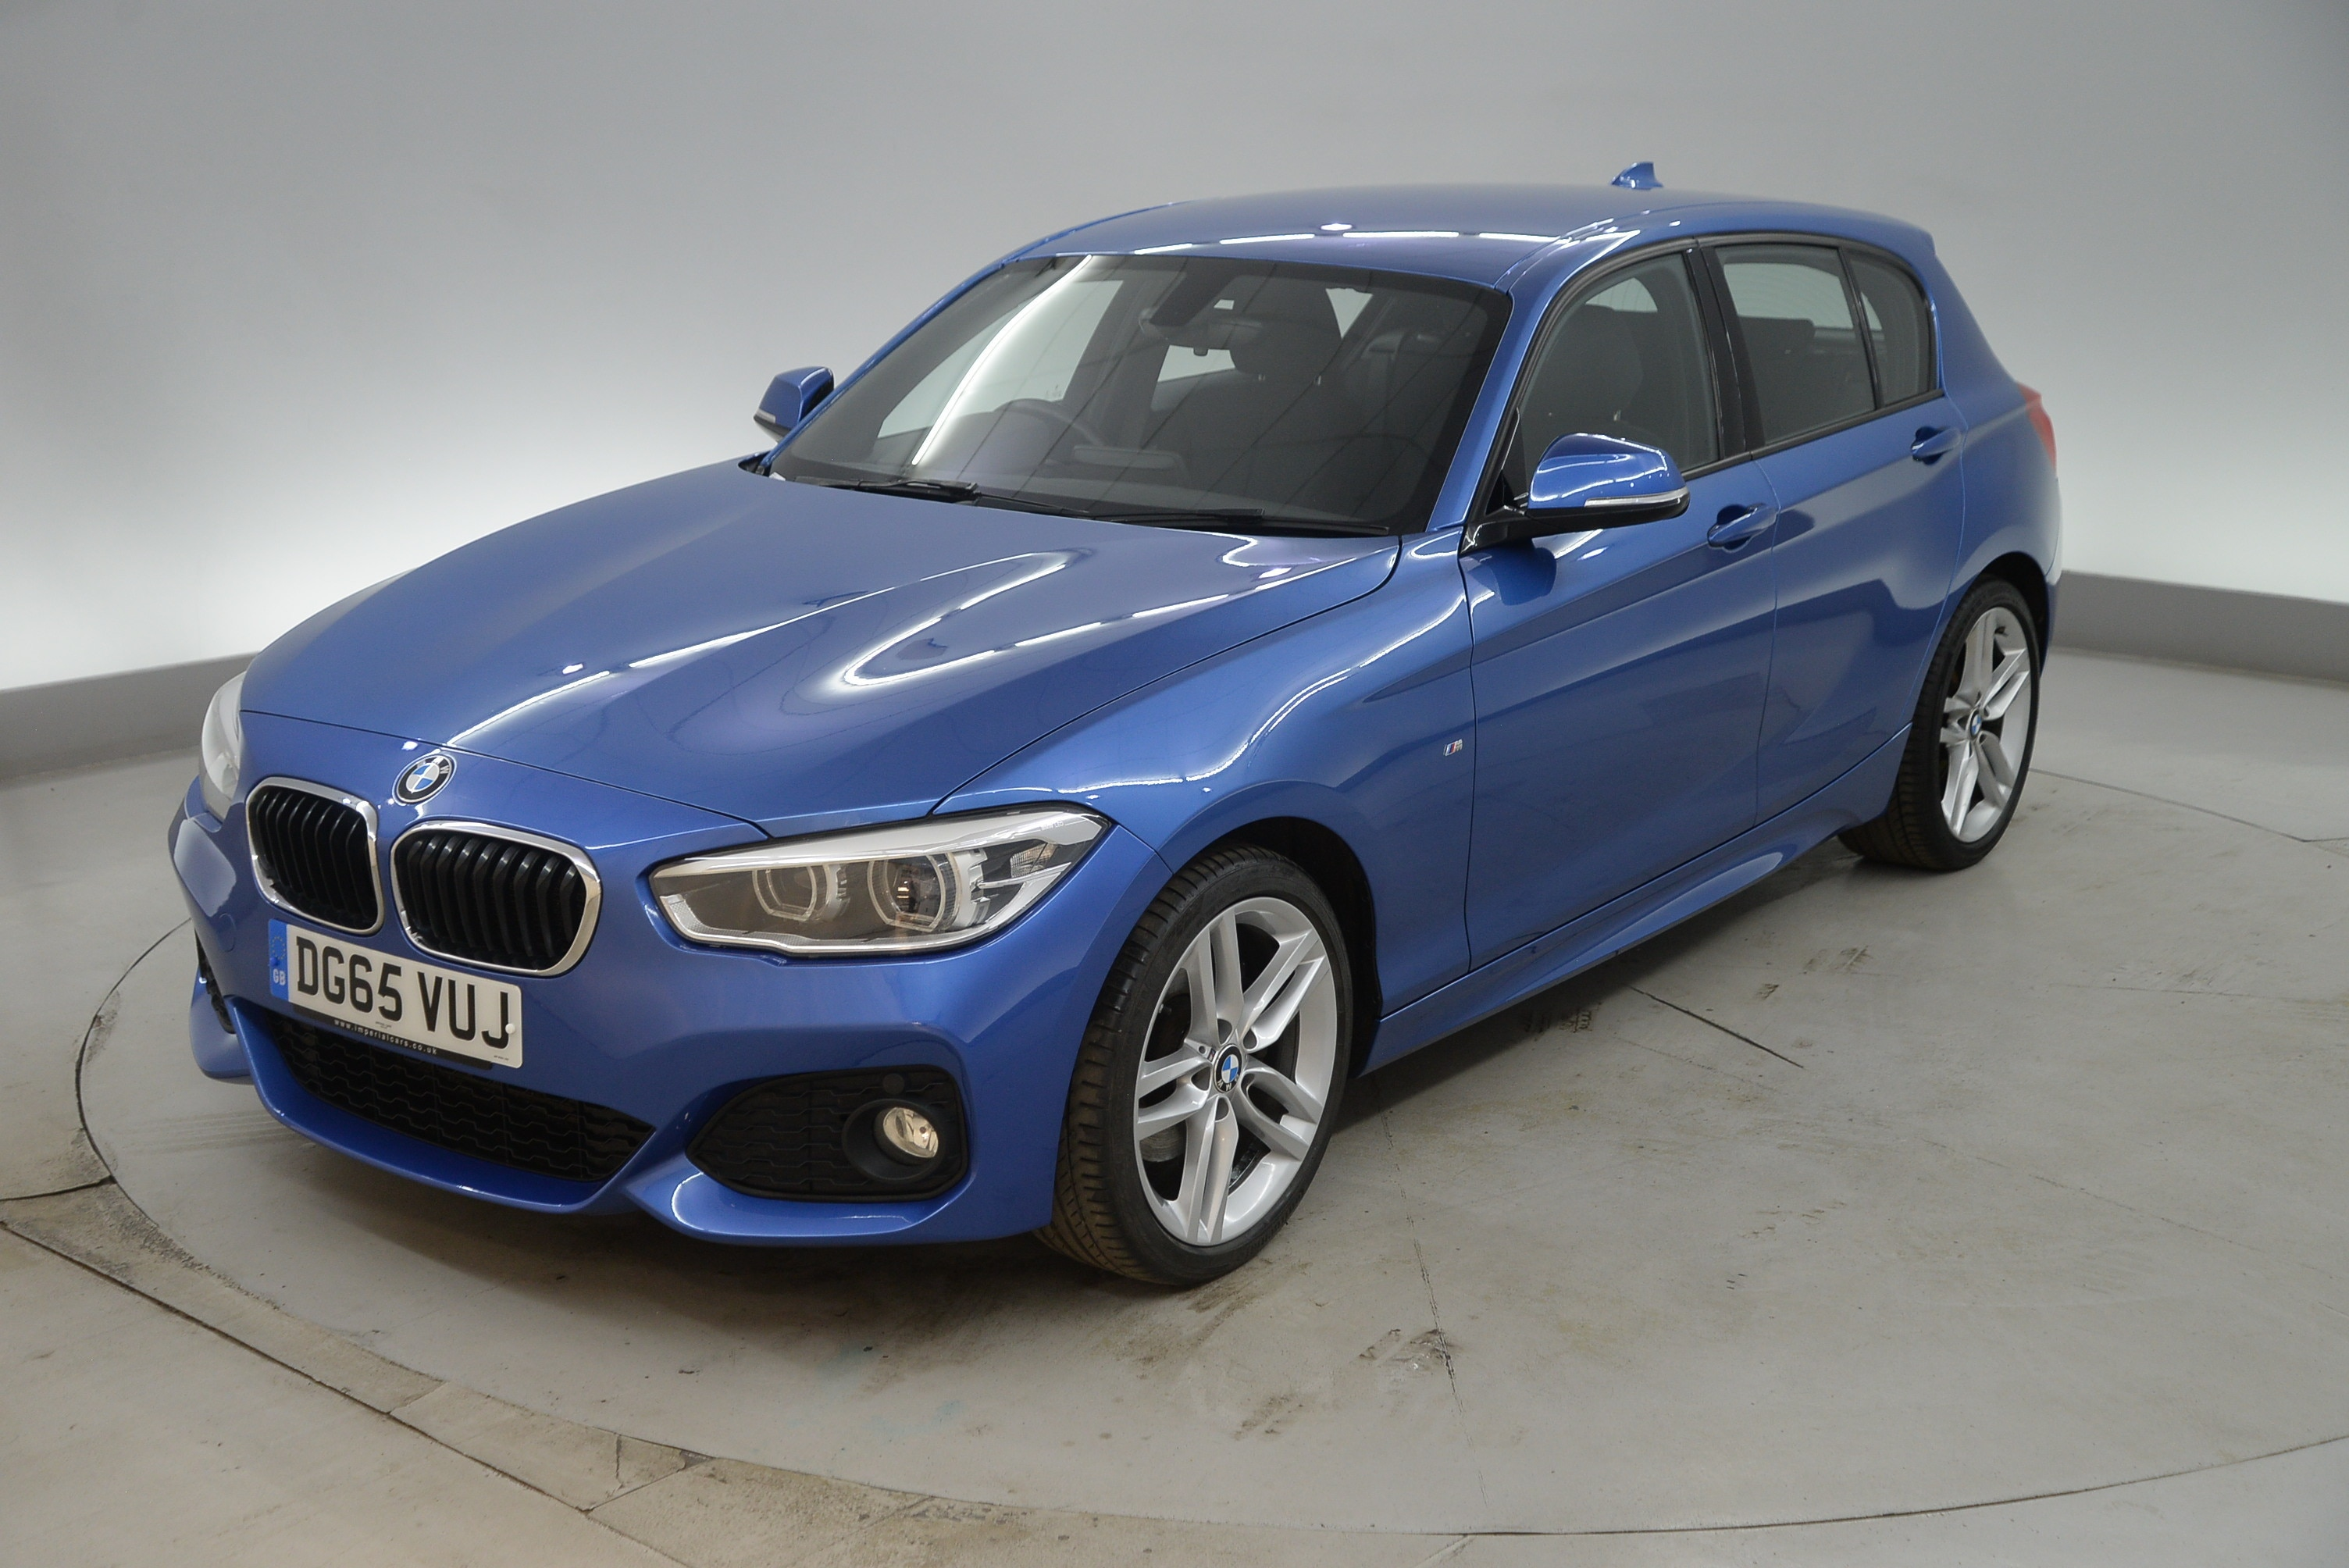 Used BMW 1 Series M Sport for Sale